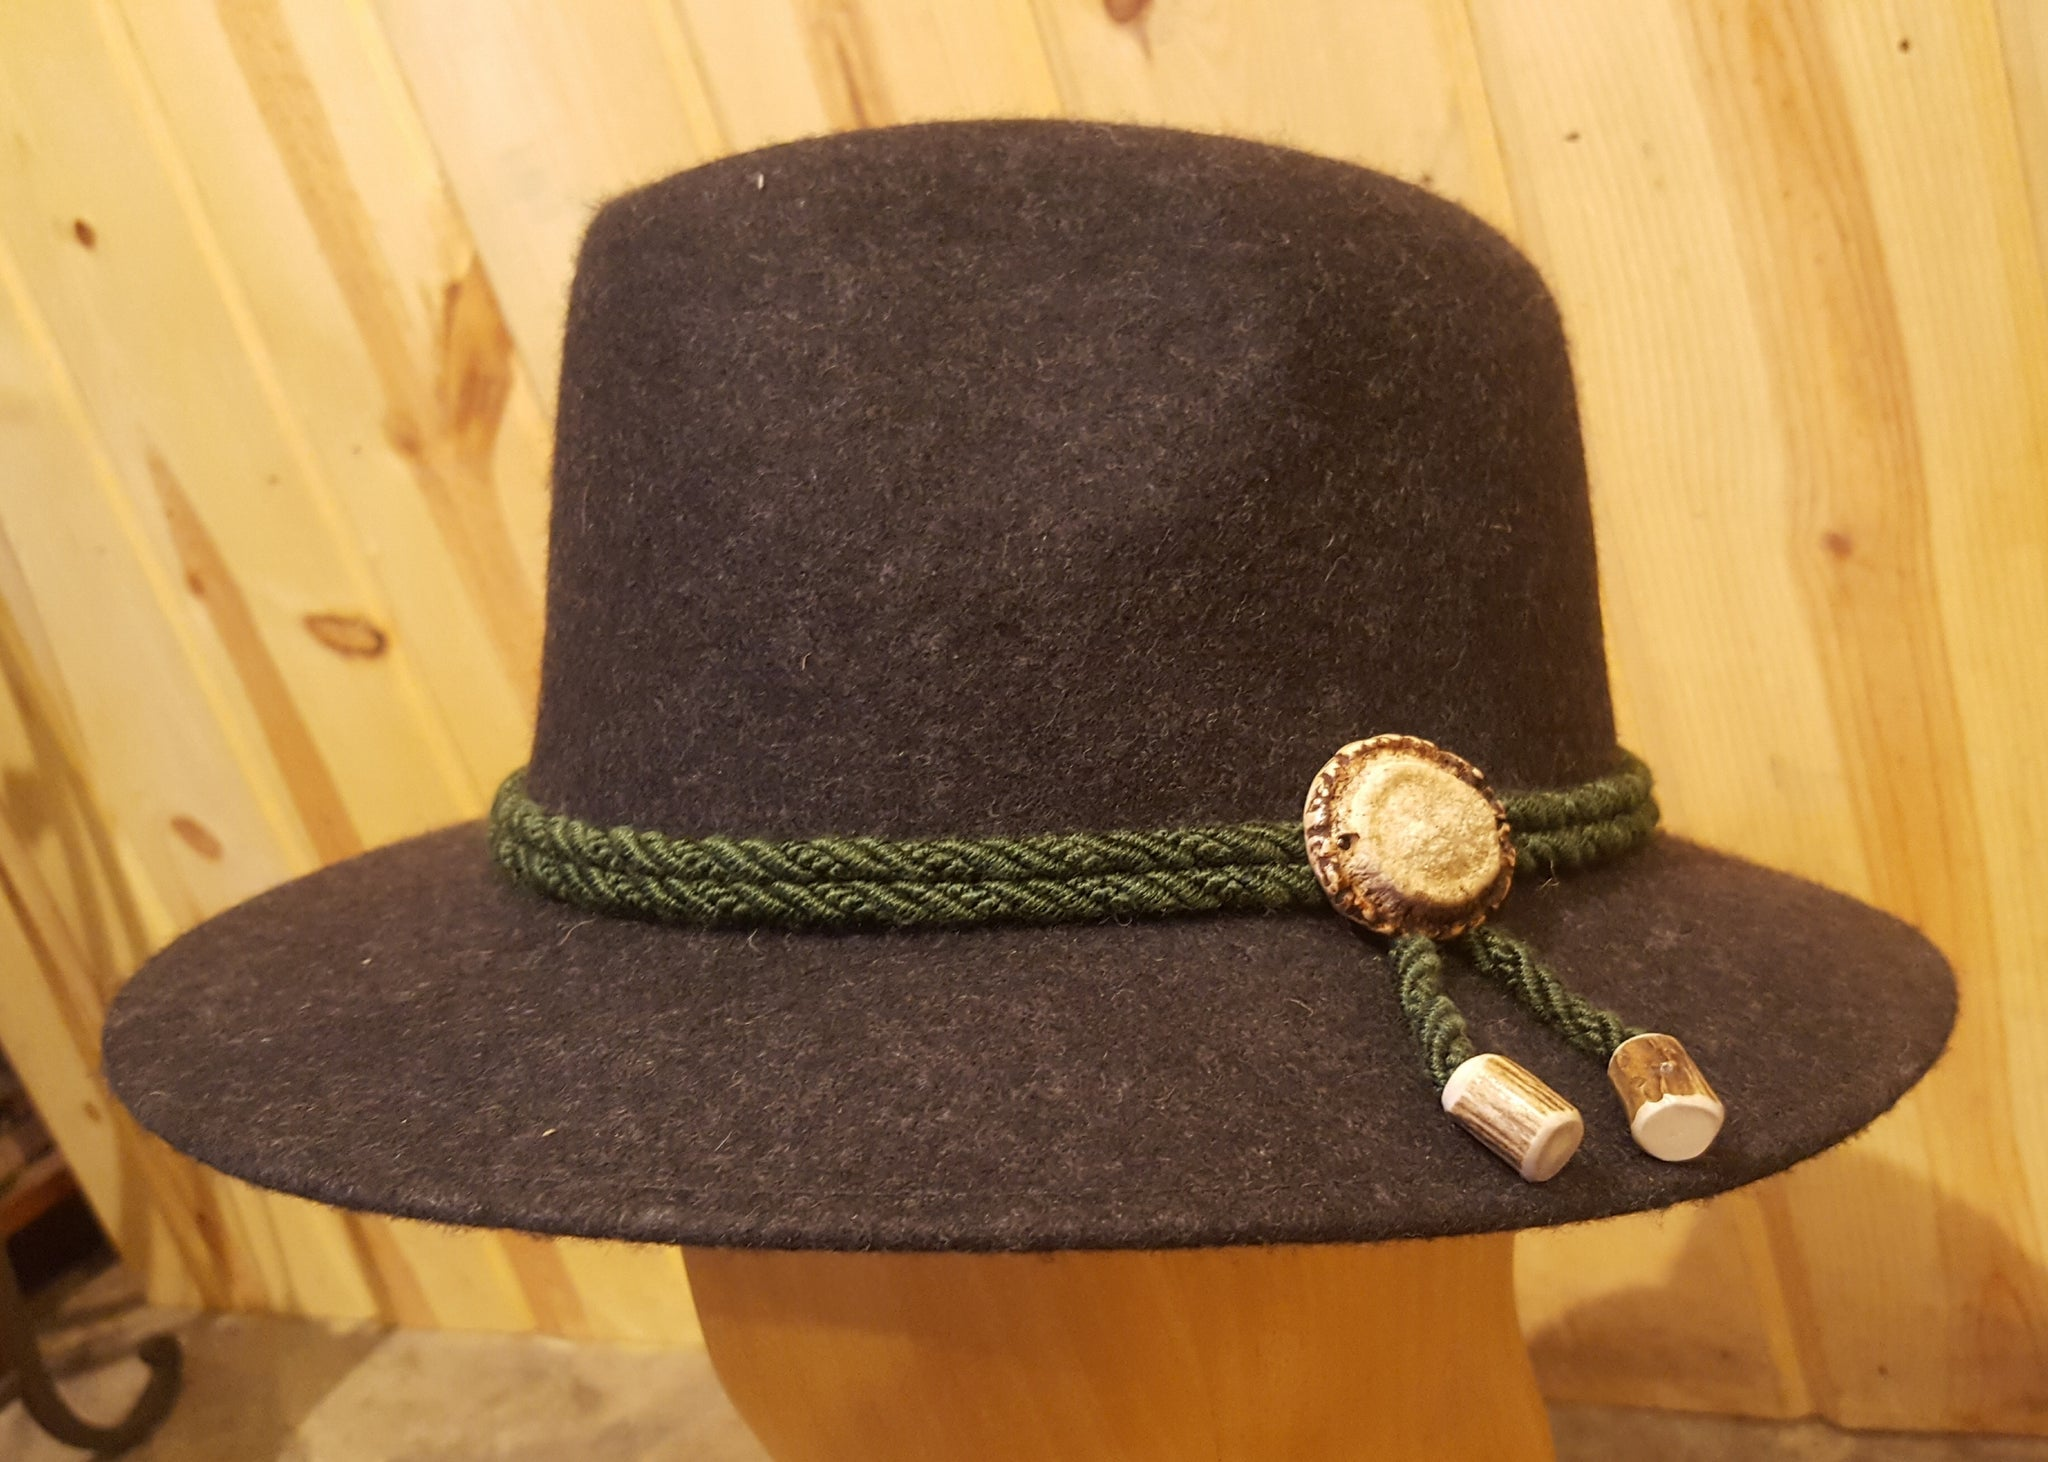 b457fee83a6 Trachten Hat with Coin